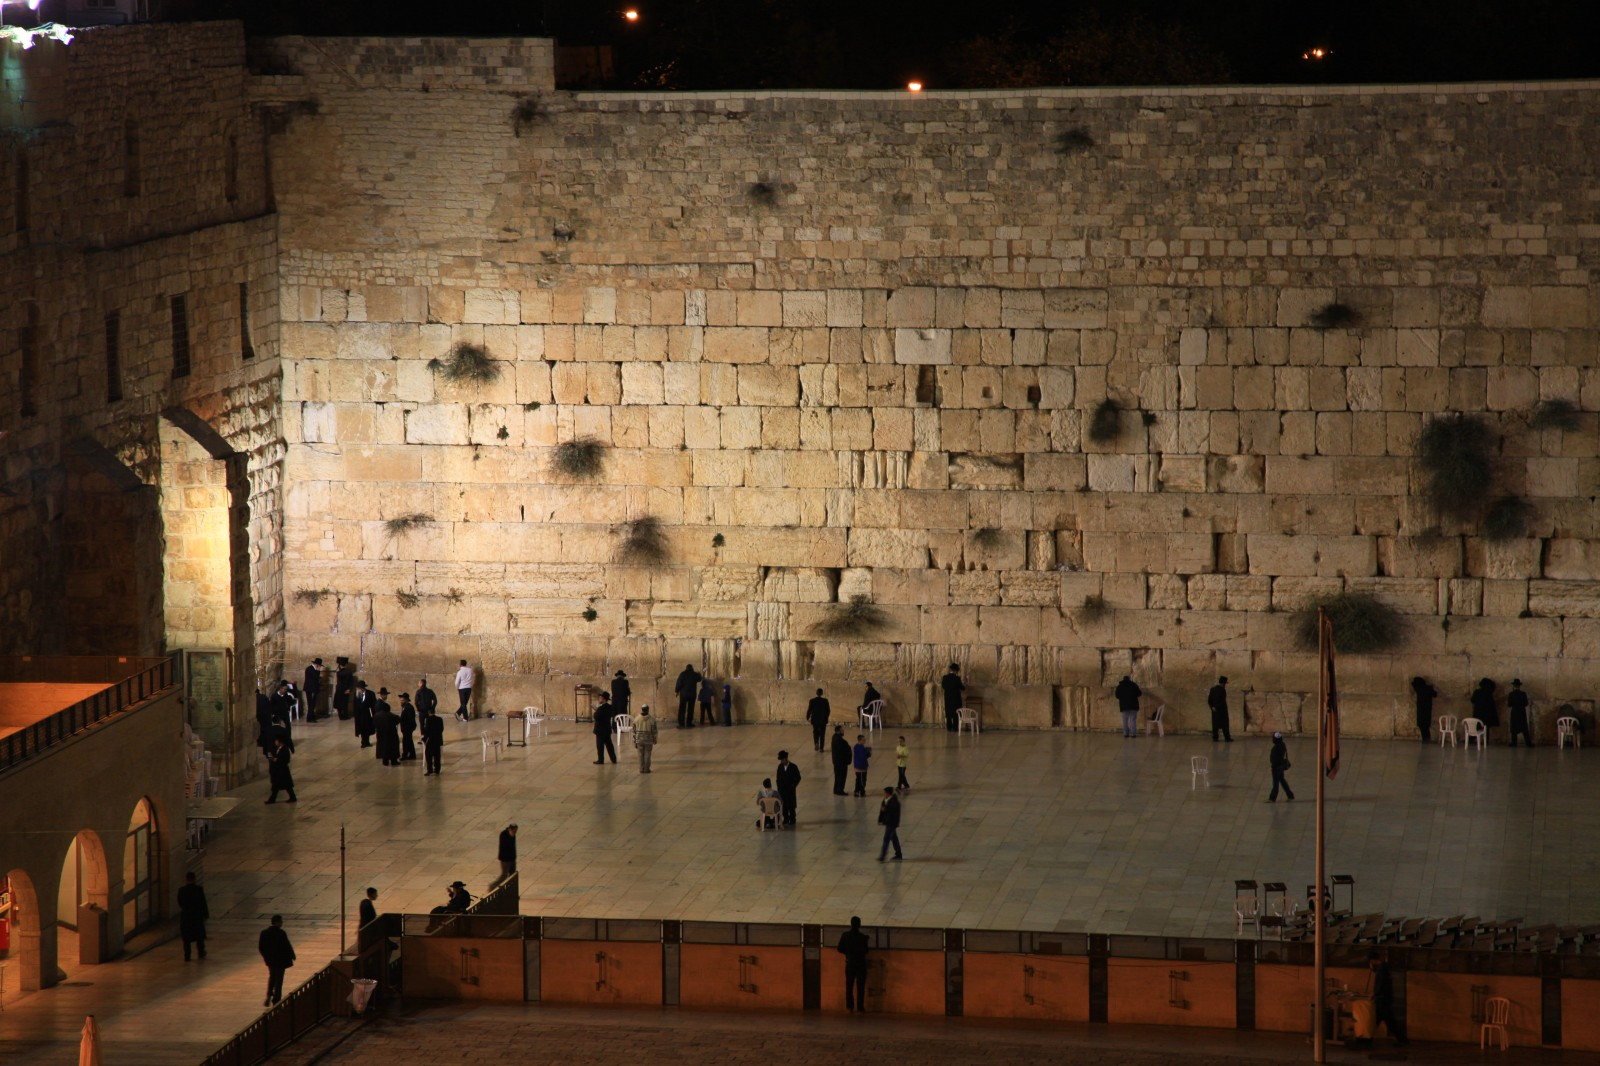 You never get bored watching Jews rocking next to the wall